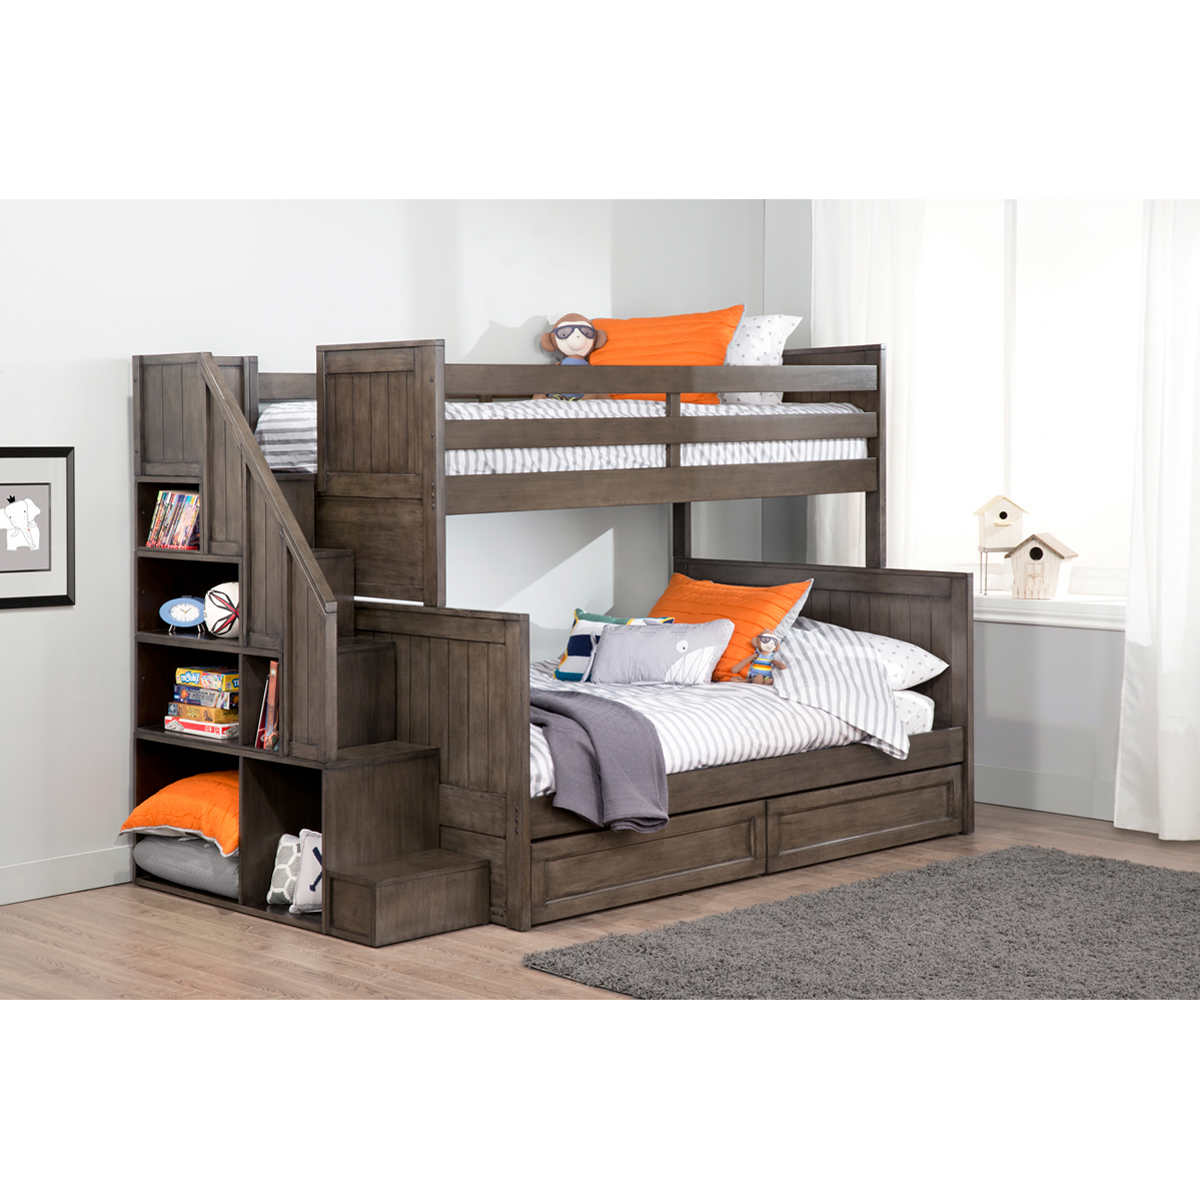 Zachary Twin over Double Bunk Bed with Universal Staircase